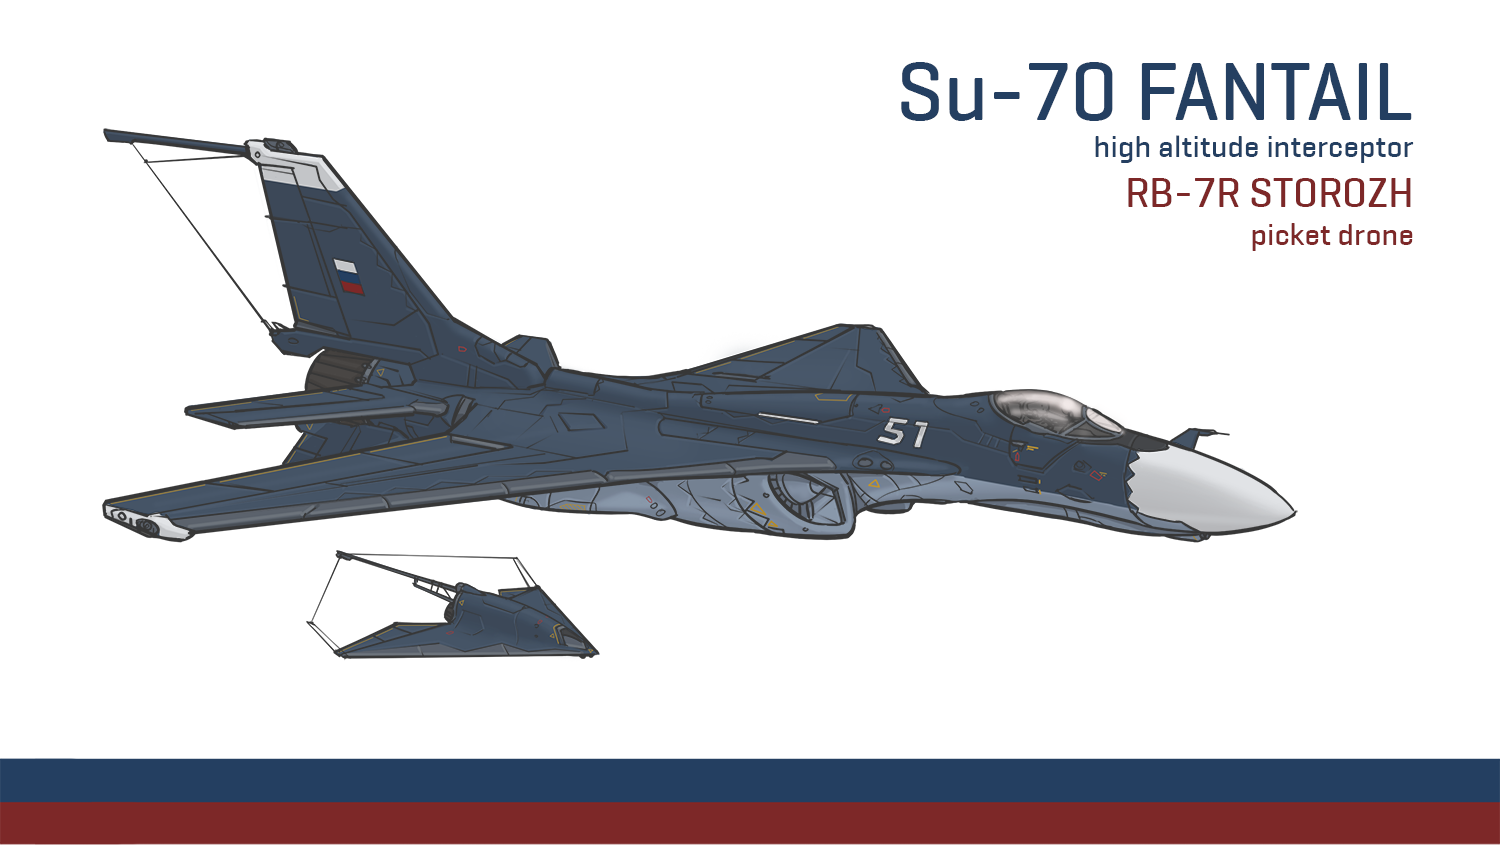 Su-70 Fantail by Exofuture on DeviantArt